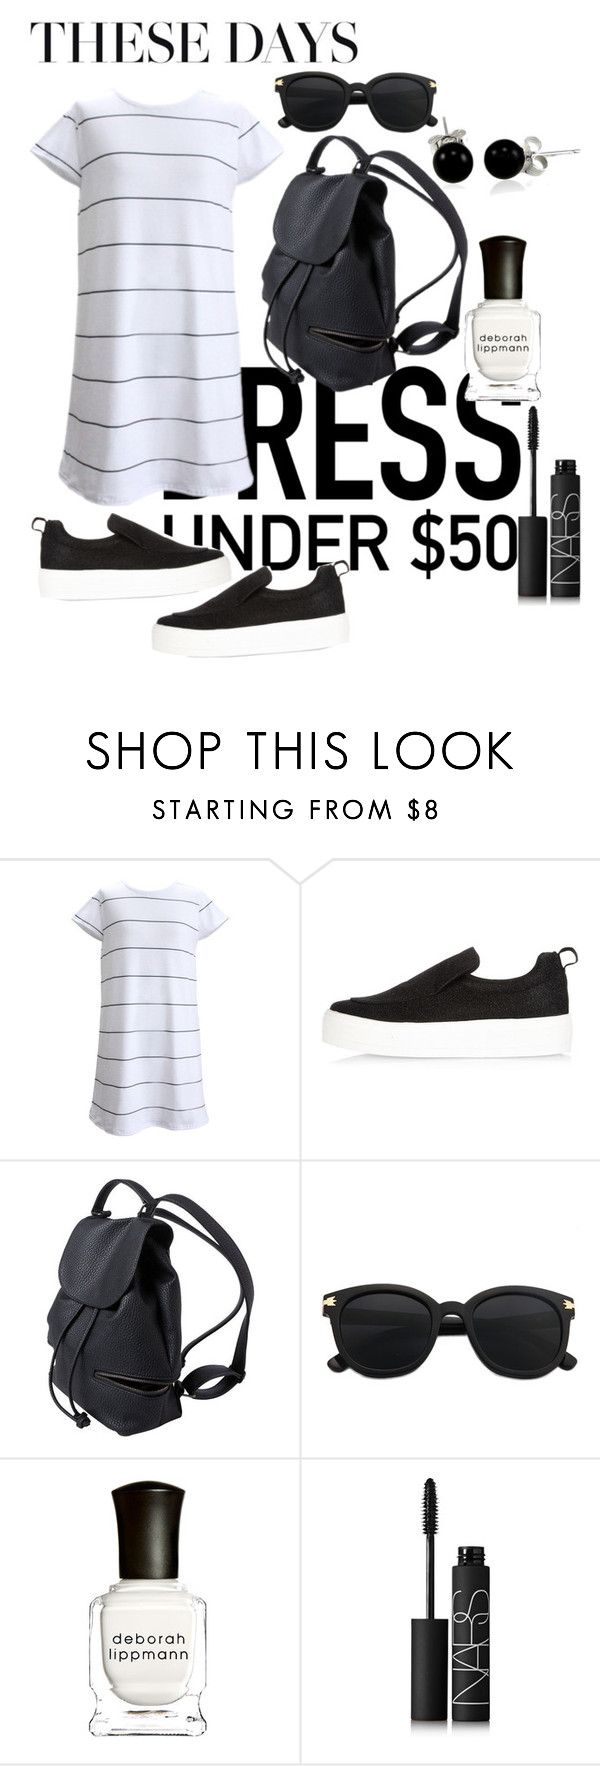 """""""Untitled #27"""" by magdalenagoldnagl ❤ liked on Polyvore featuring River Island, Deborah Lippmann, NARS Cosmetics, Bling Jewelry and Dressunder50"""